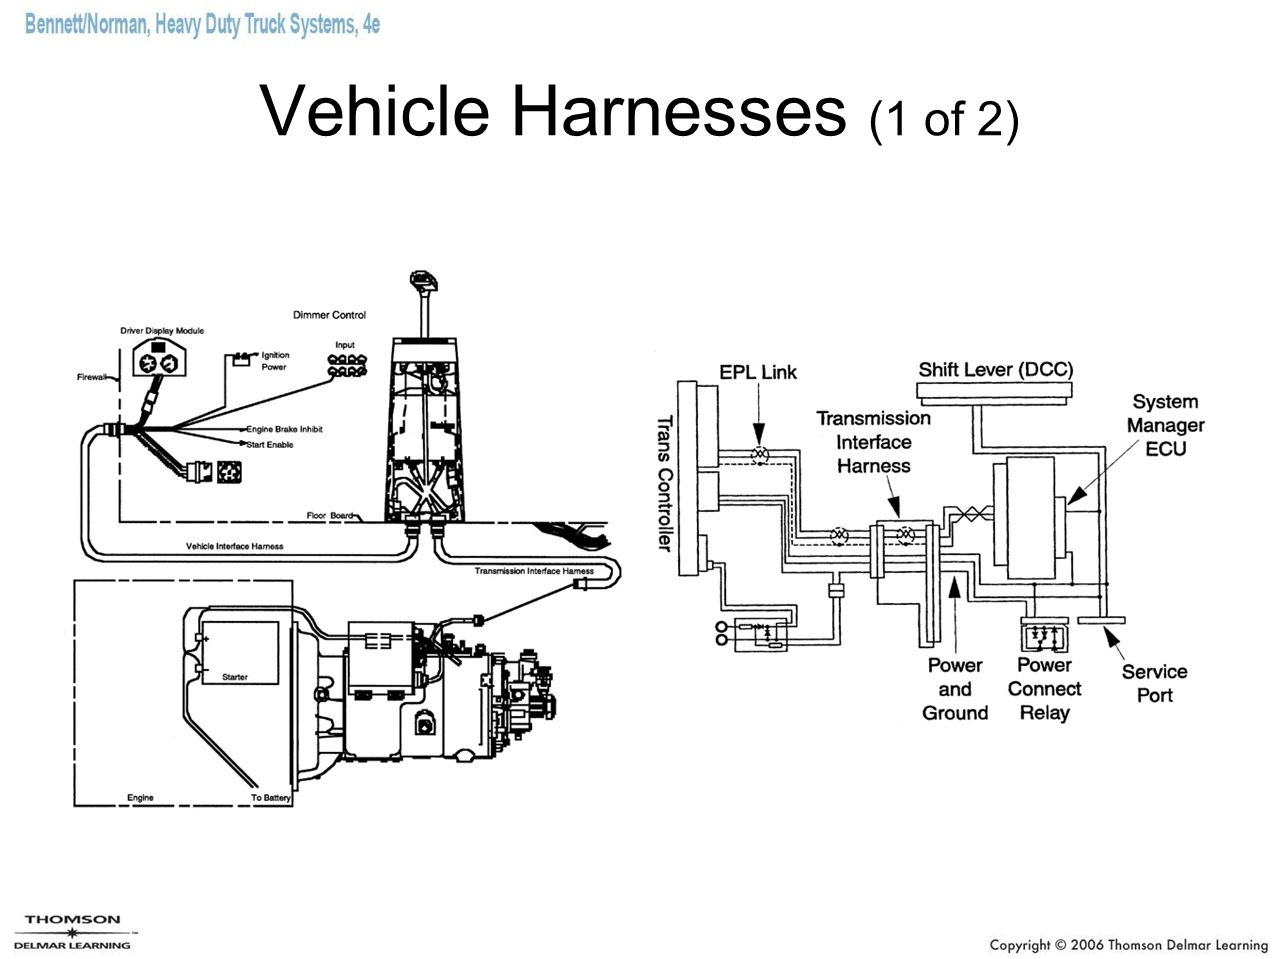 Vehicle Harnesses (1 of 2)